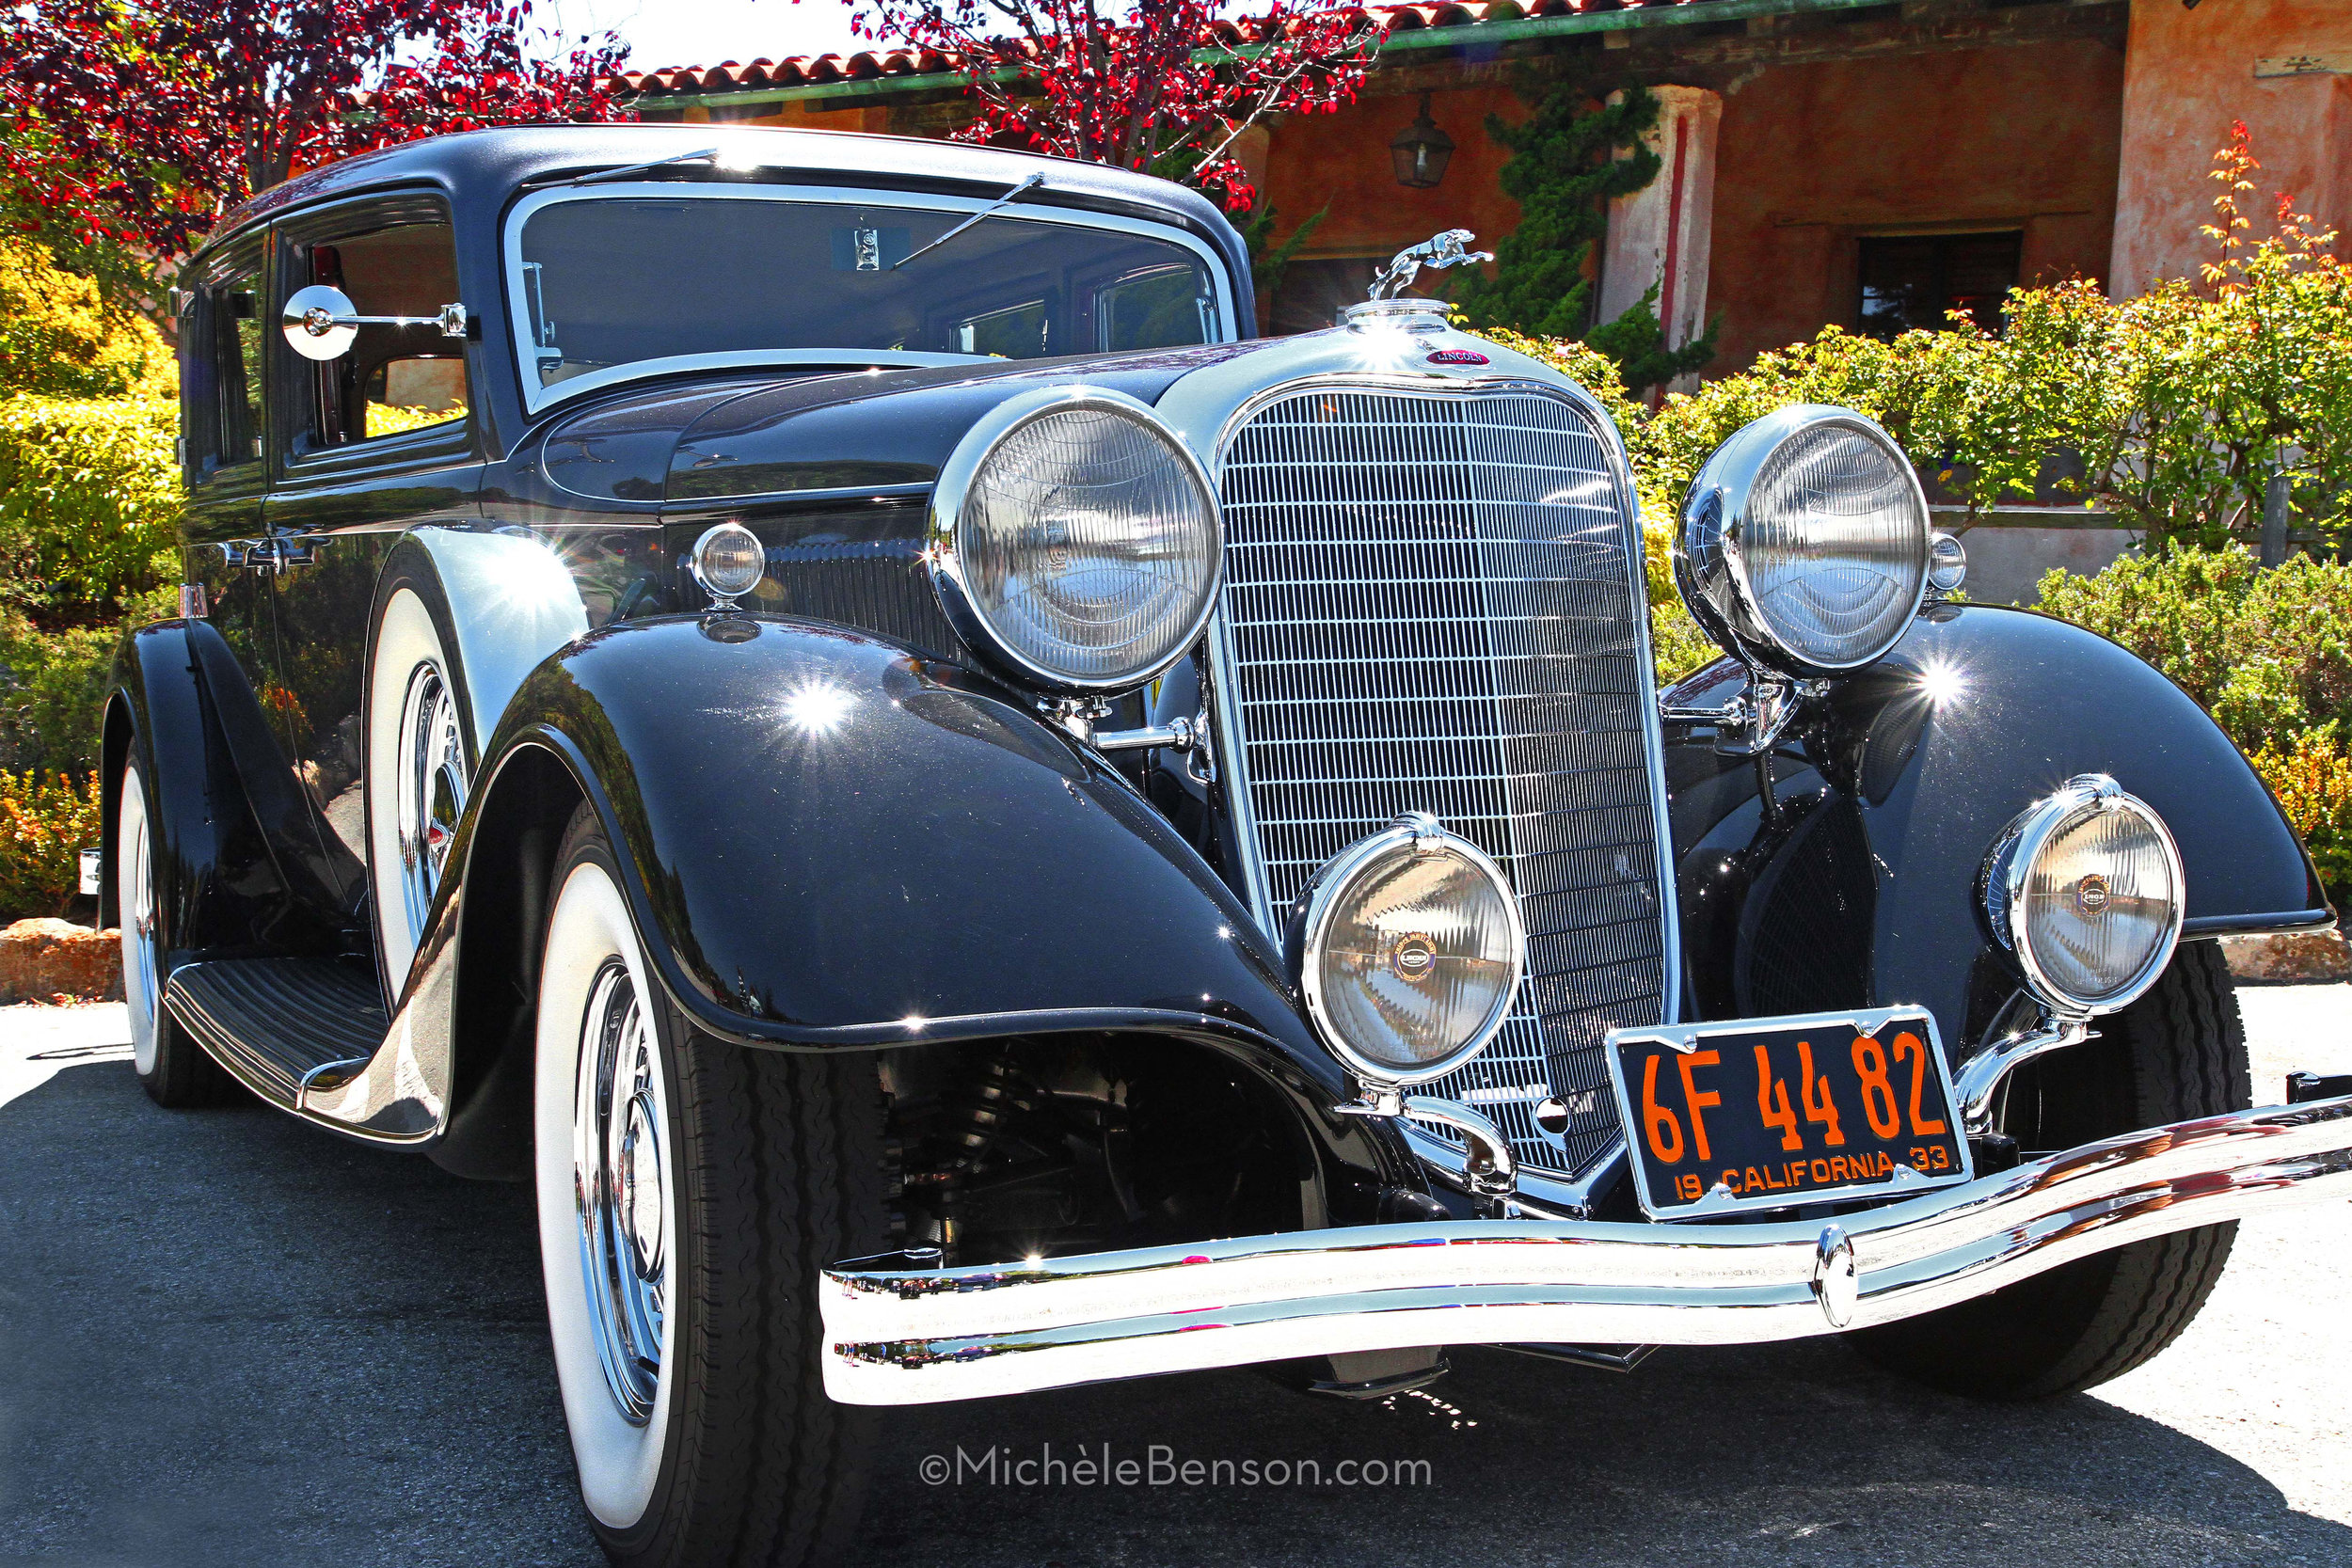 1934 Ford Custom Carmel, California 2015